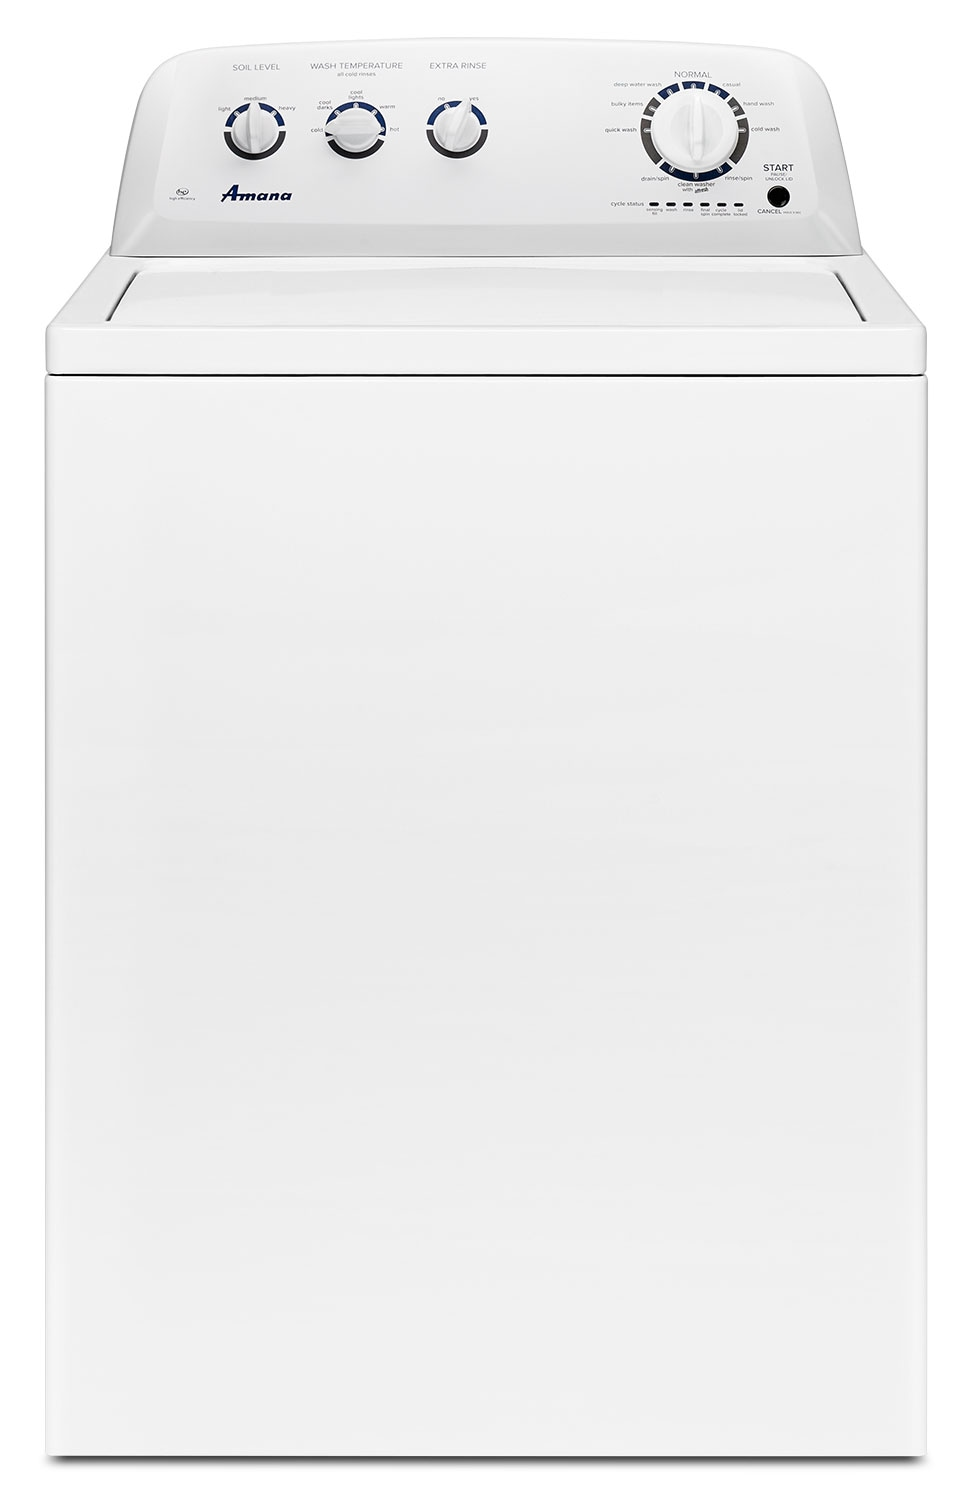 Amana White Top-Load Electric Washer (4.1 Cu. Ft.) - NTW4705EW